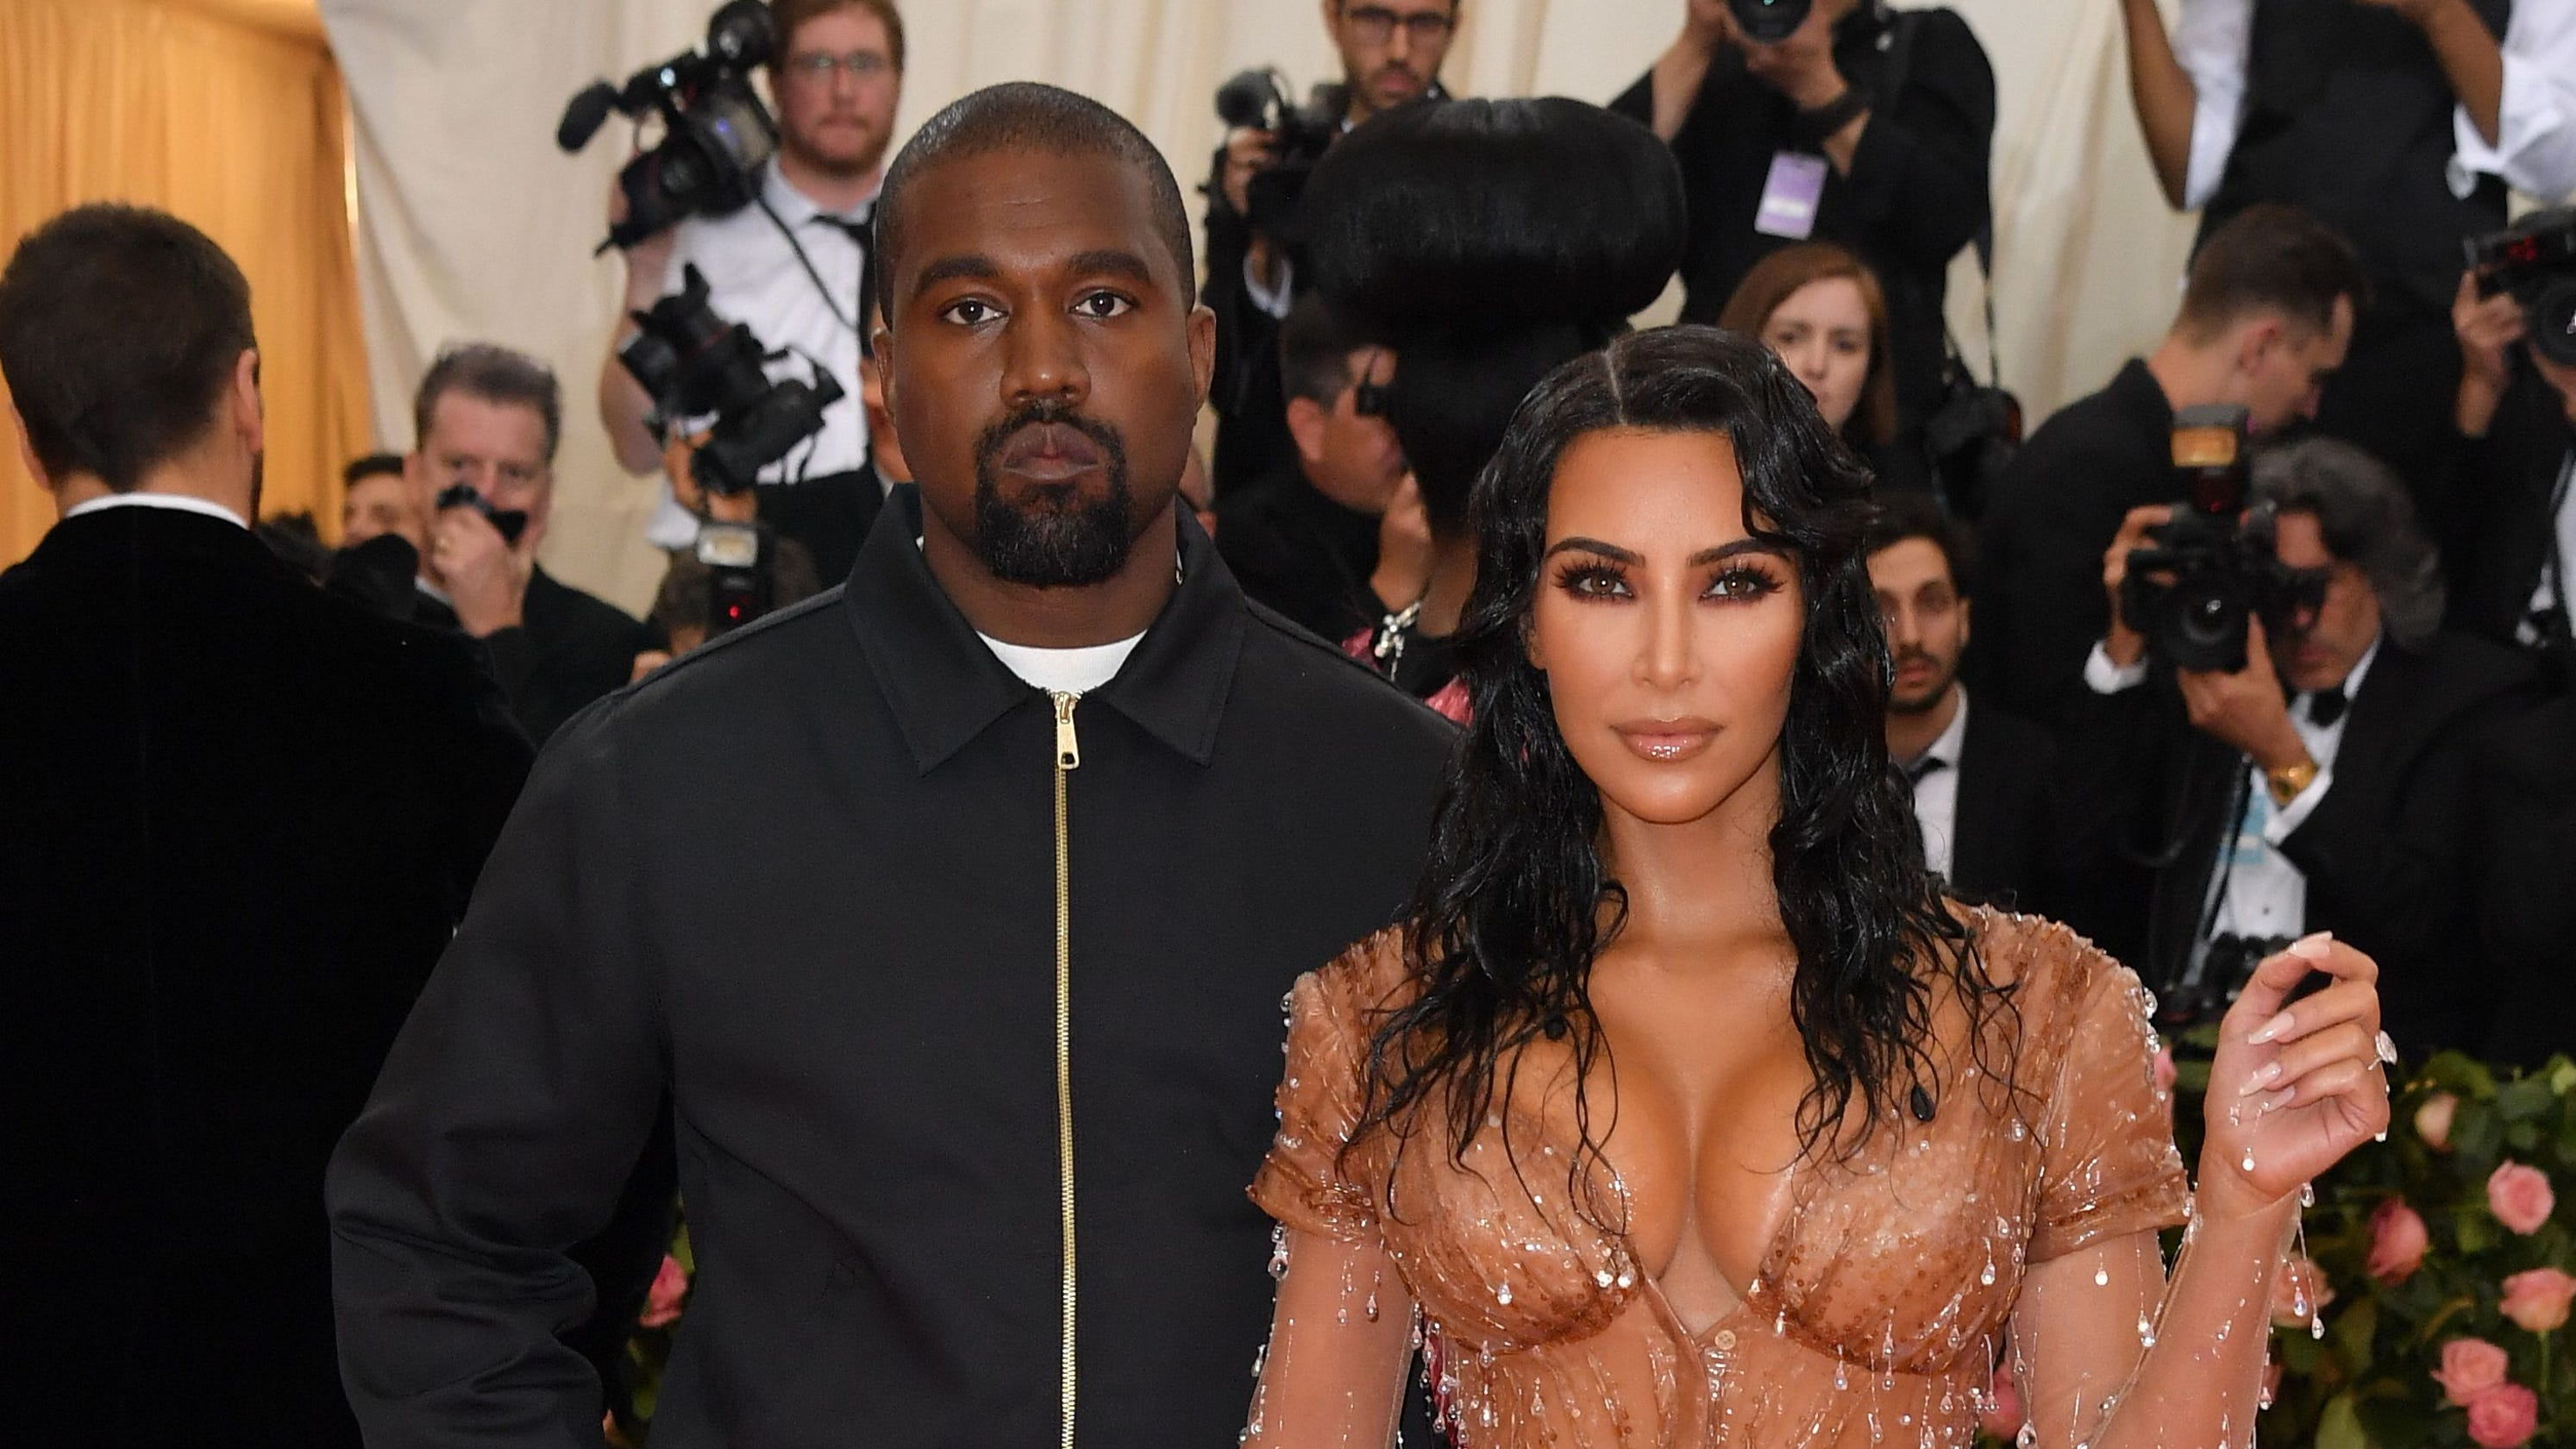 Kanye West's comeback: From $53 million in debt to making over $150 million in a year thumbnail